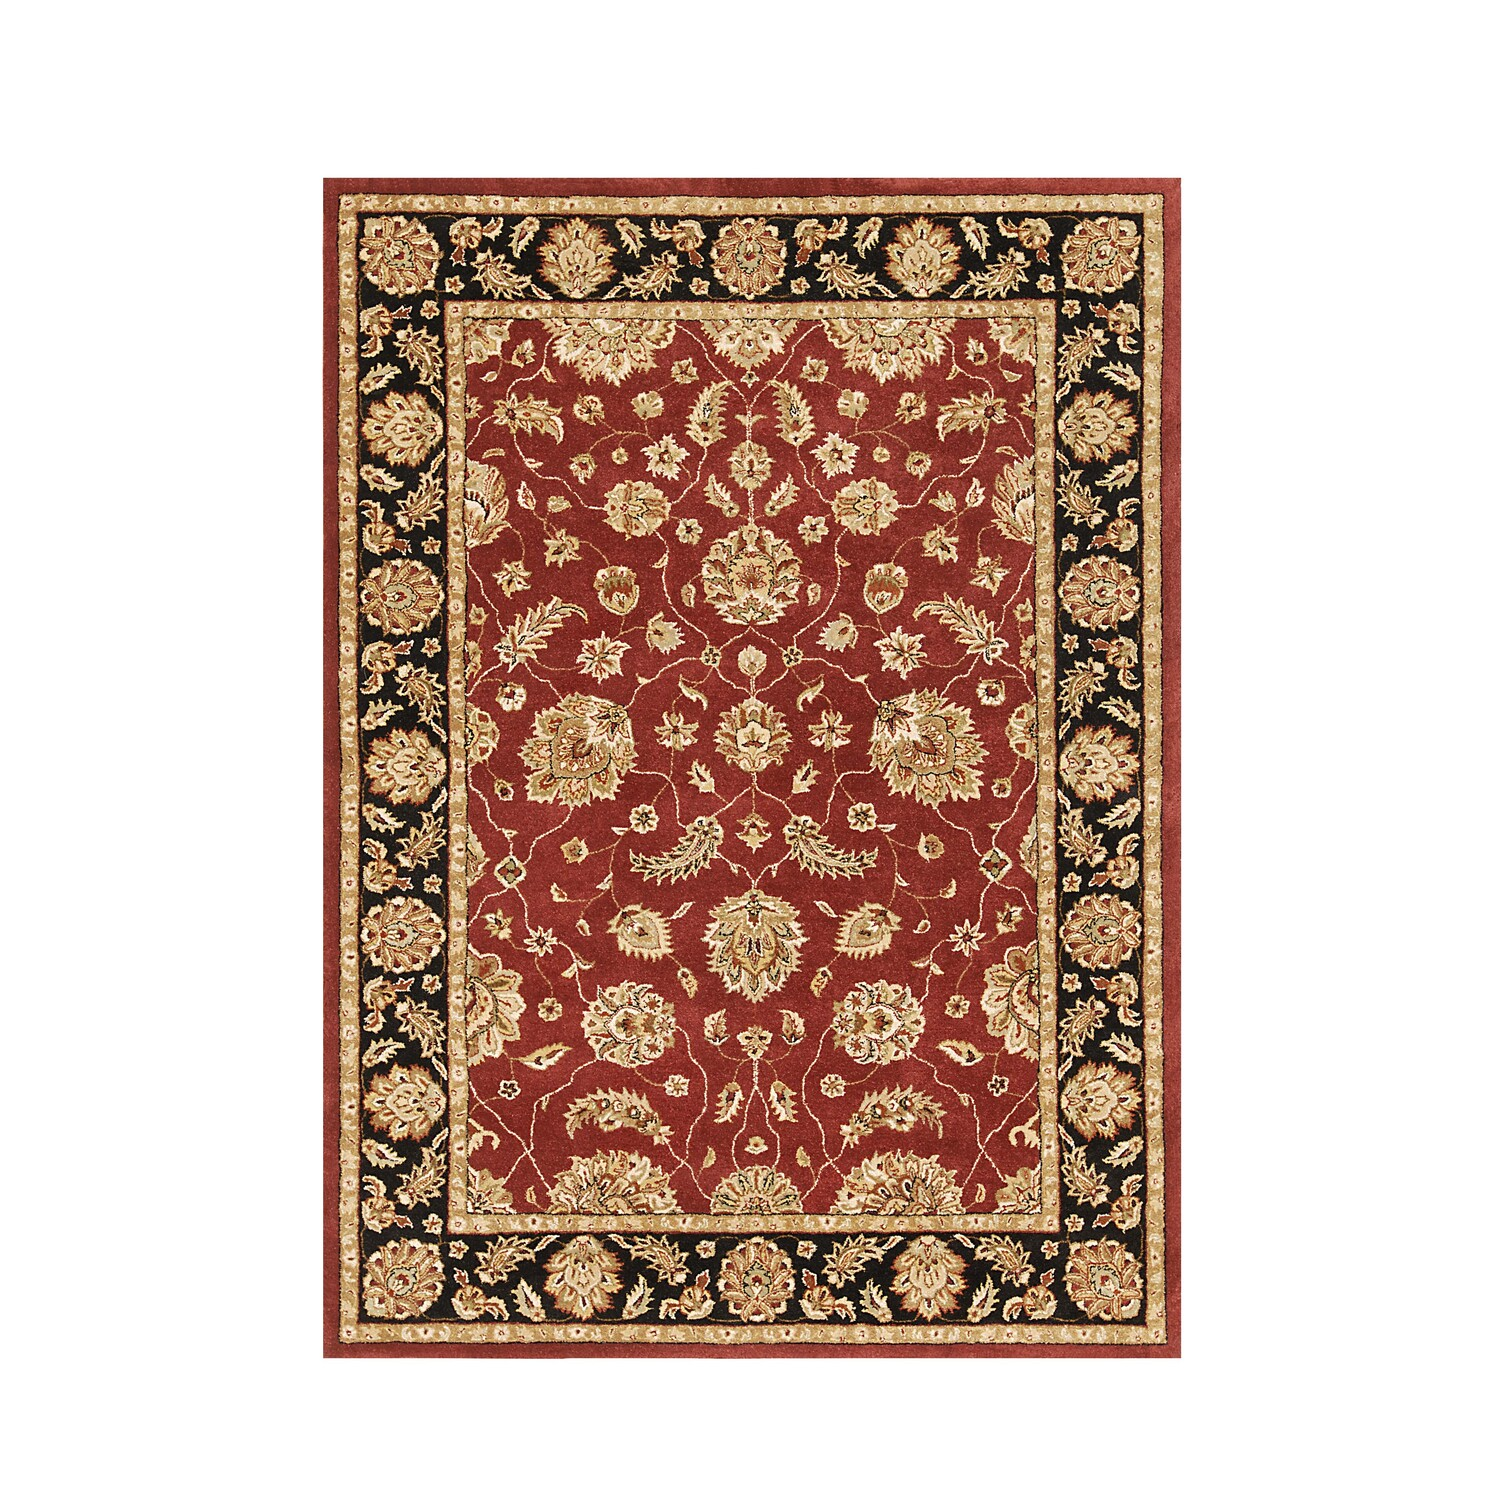 Product Details - Red Paisley Tufted Wool Rug